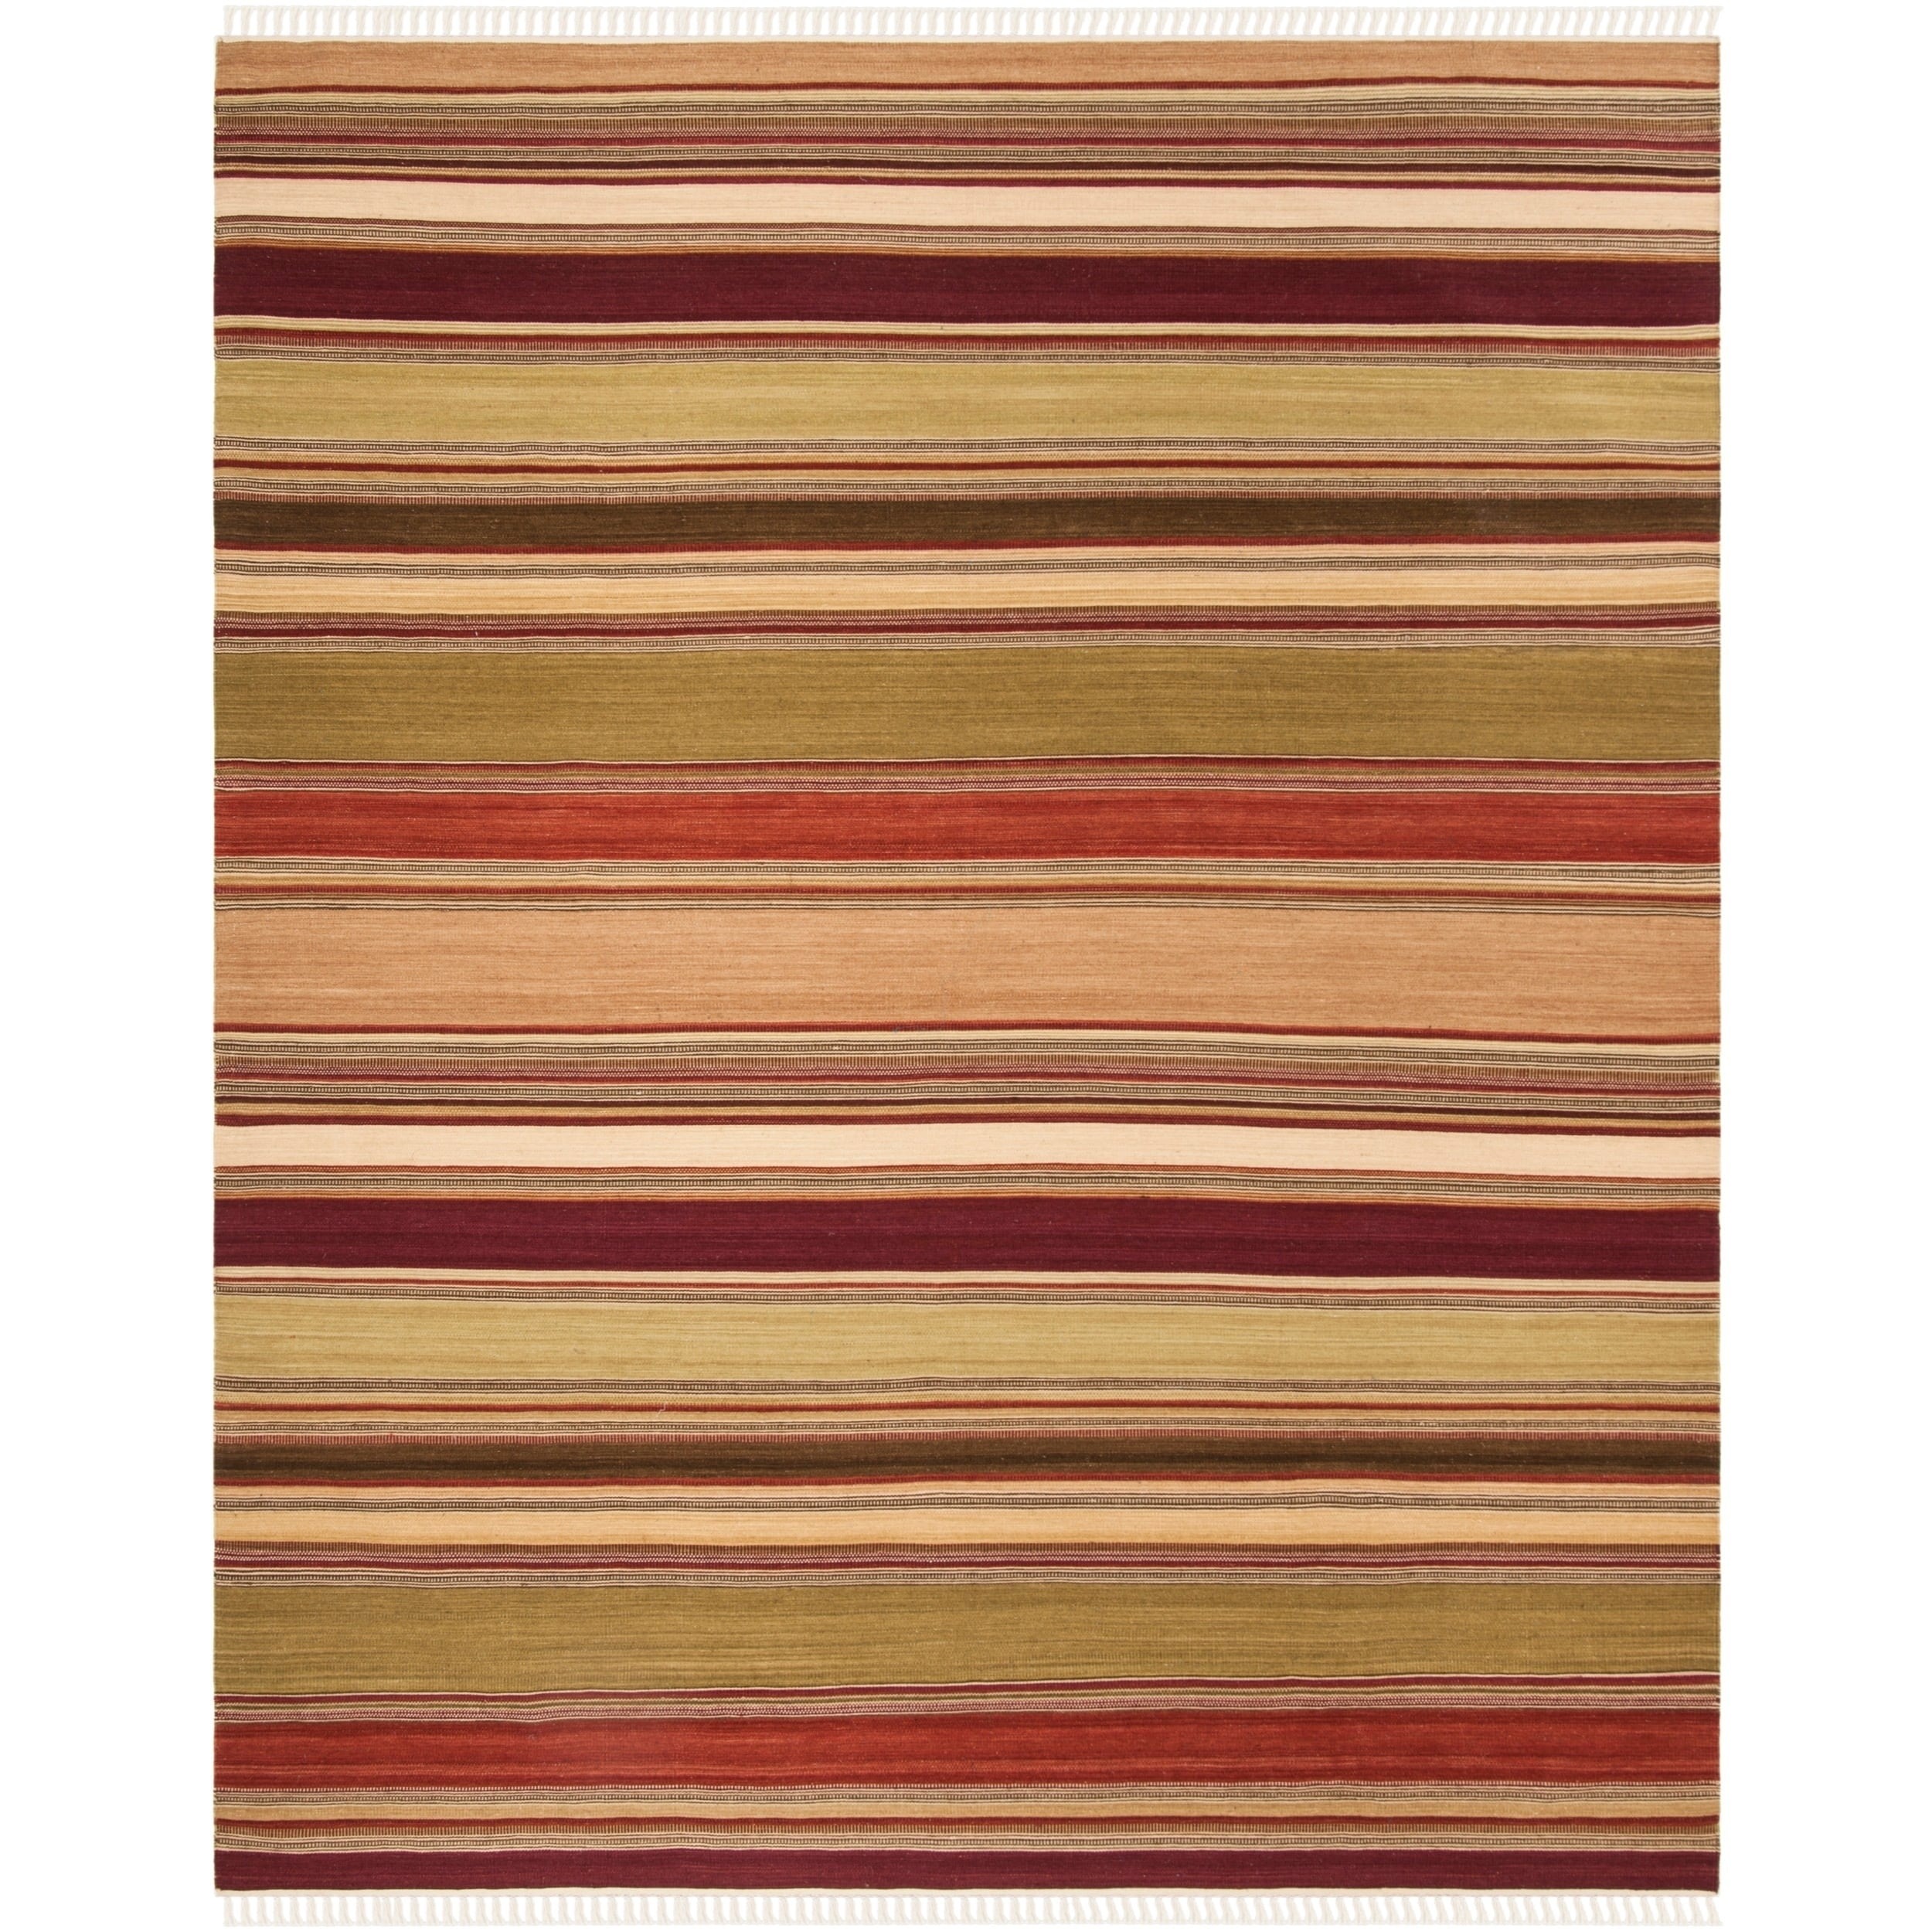 Safavieh Tapestry-woven Striped Kilim Village Red Wool Ru...